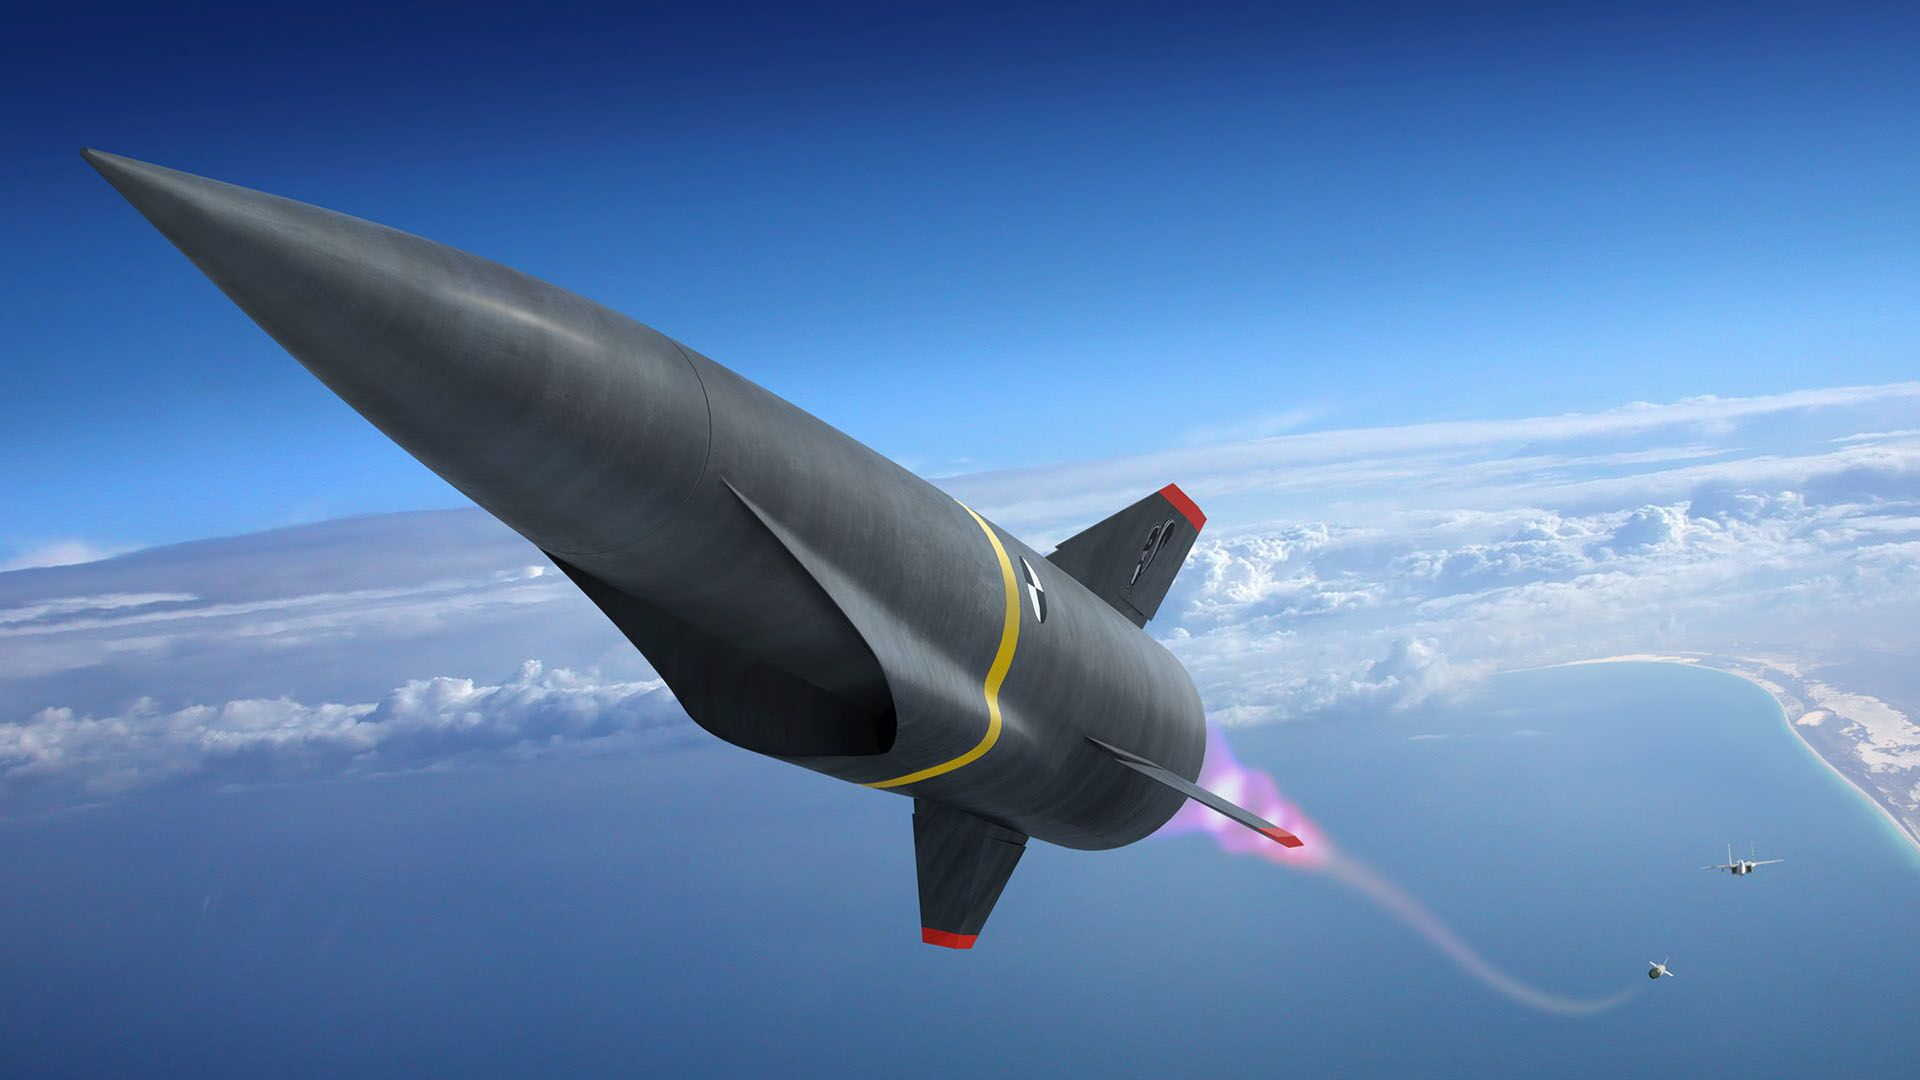 Artist's conception of a hypersonic missile during its launch phase. - Sputnik International, 1920, 28.09.2021